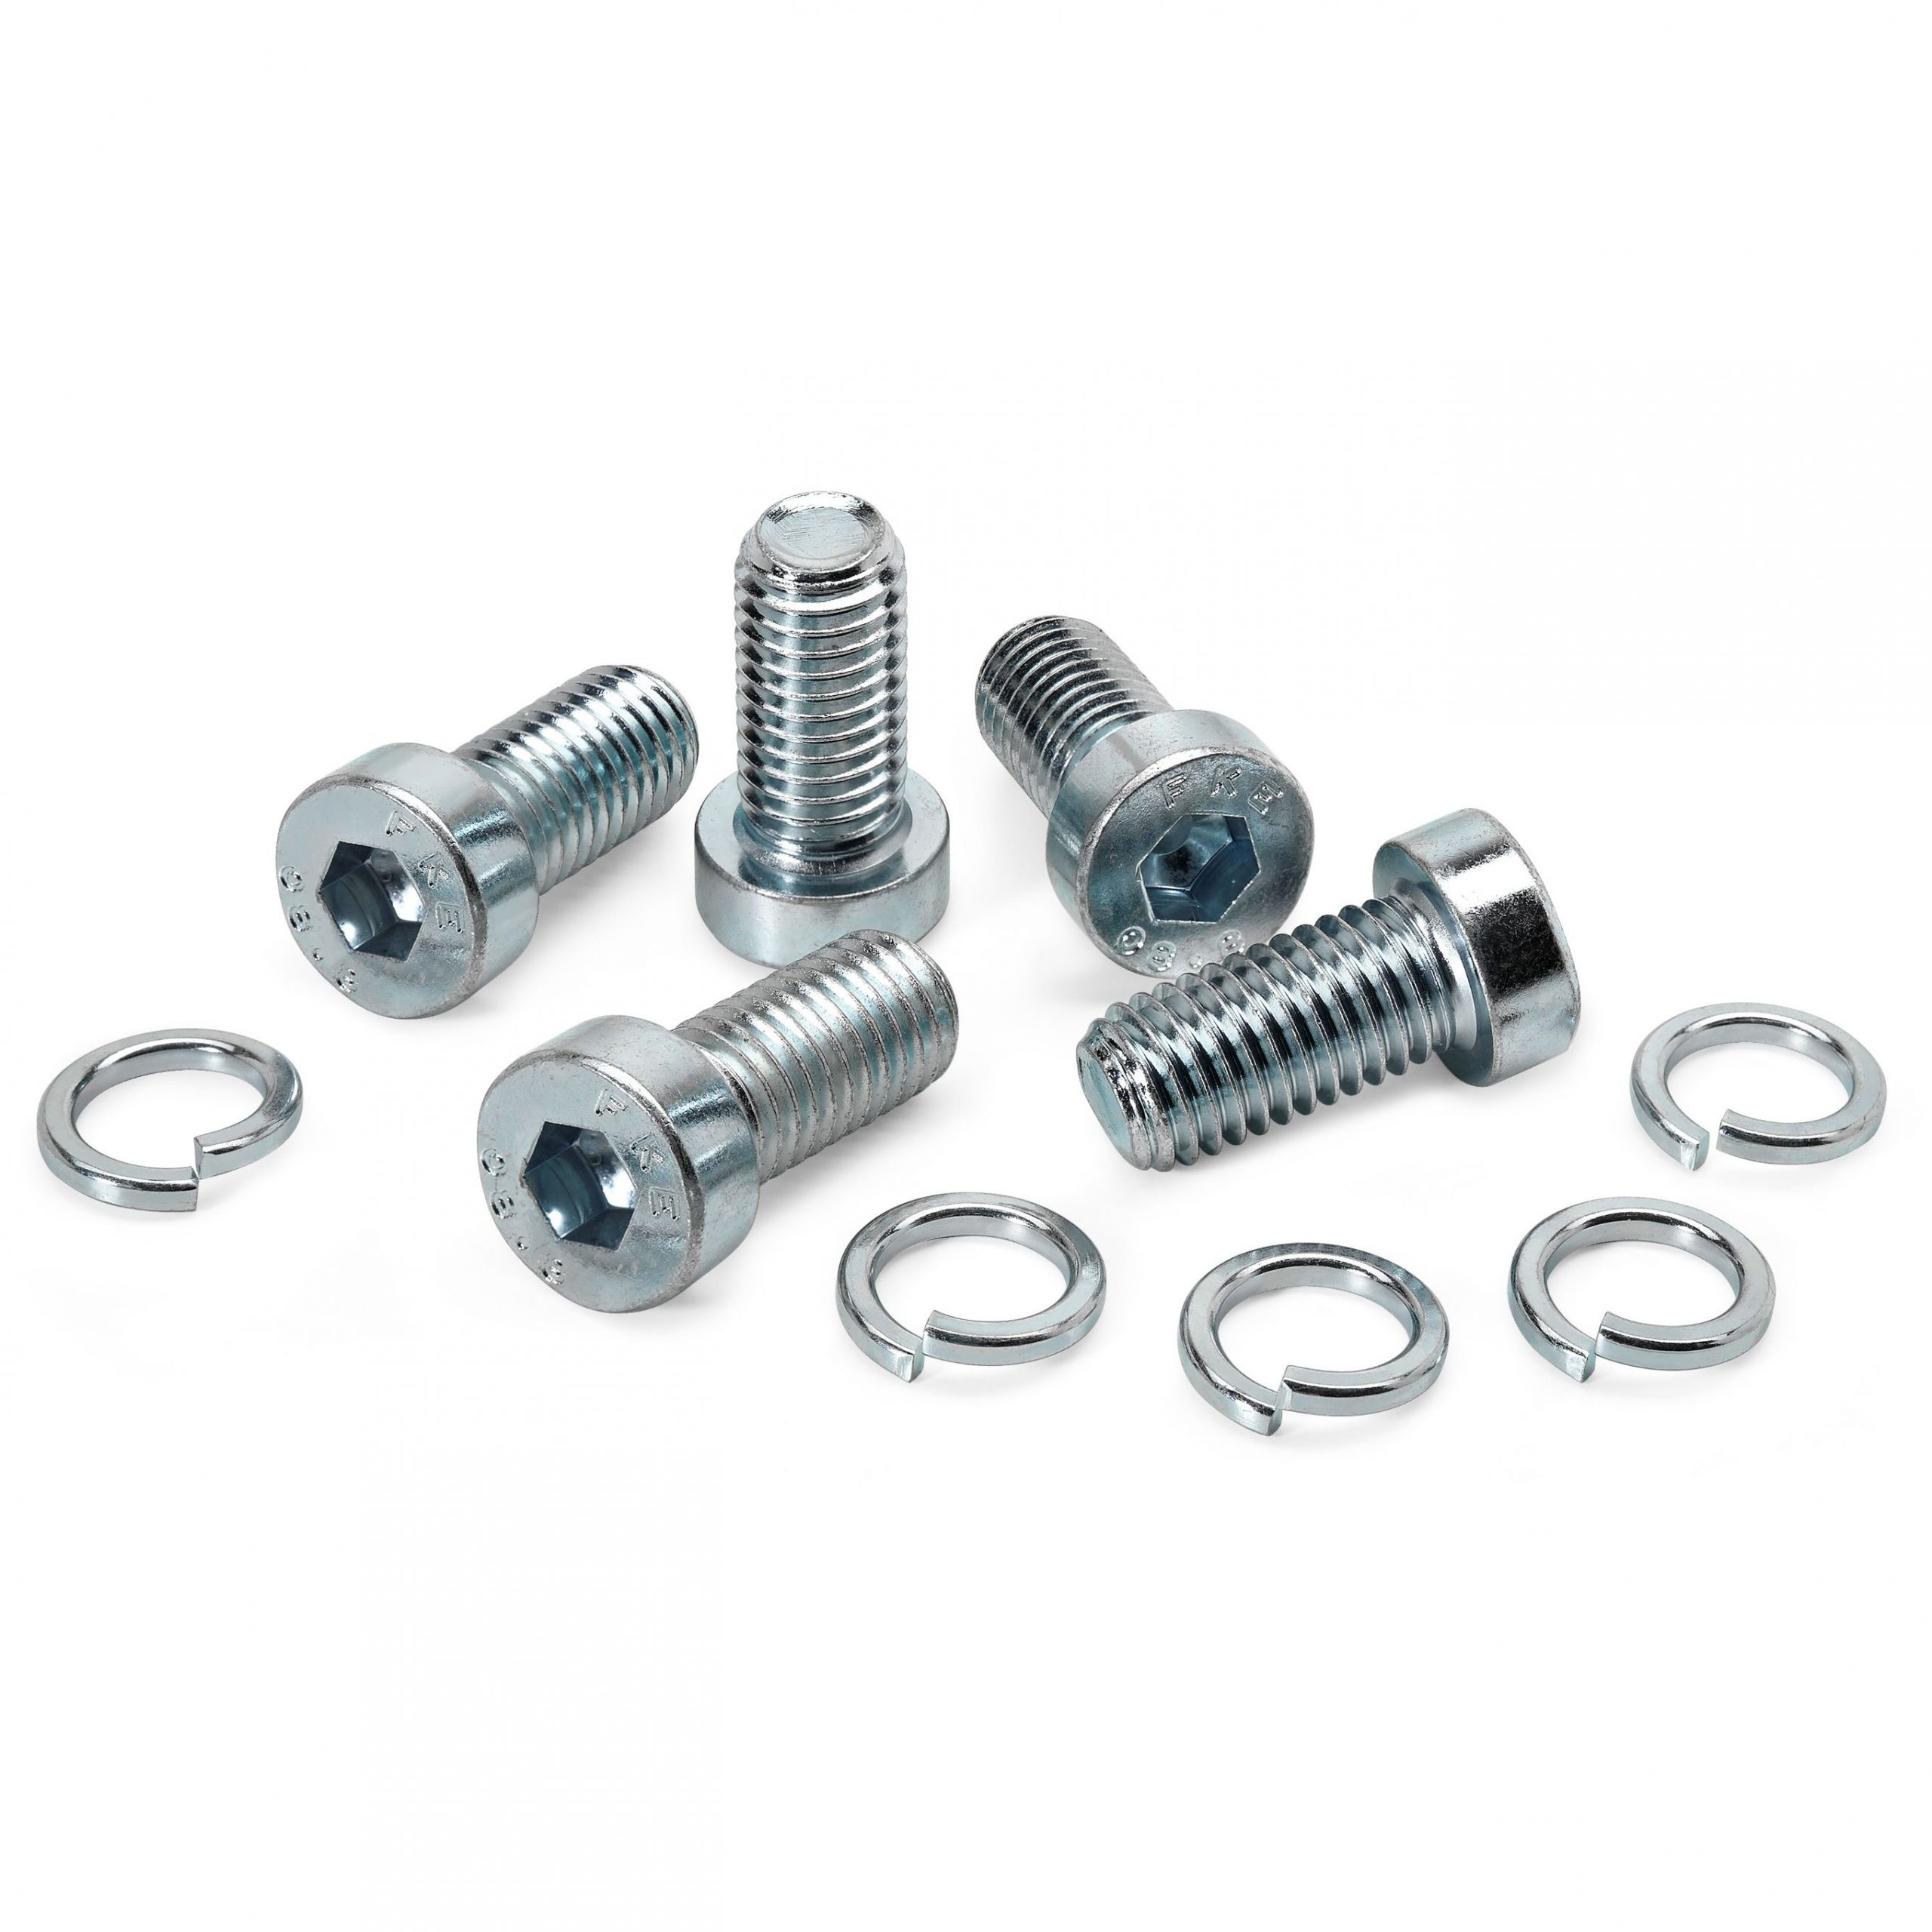 Clamp bolts and washers